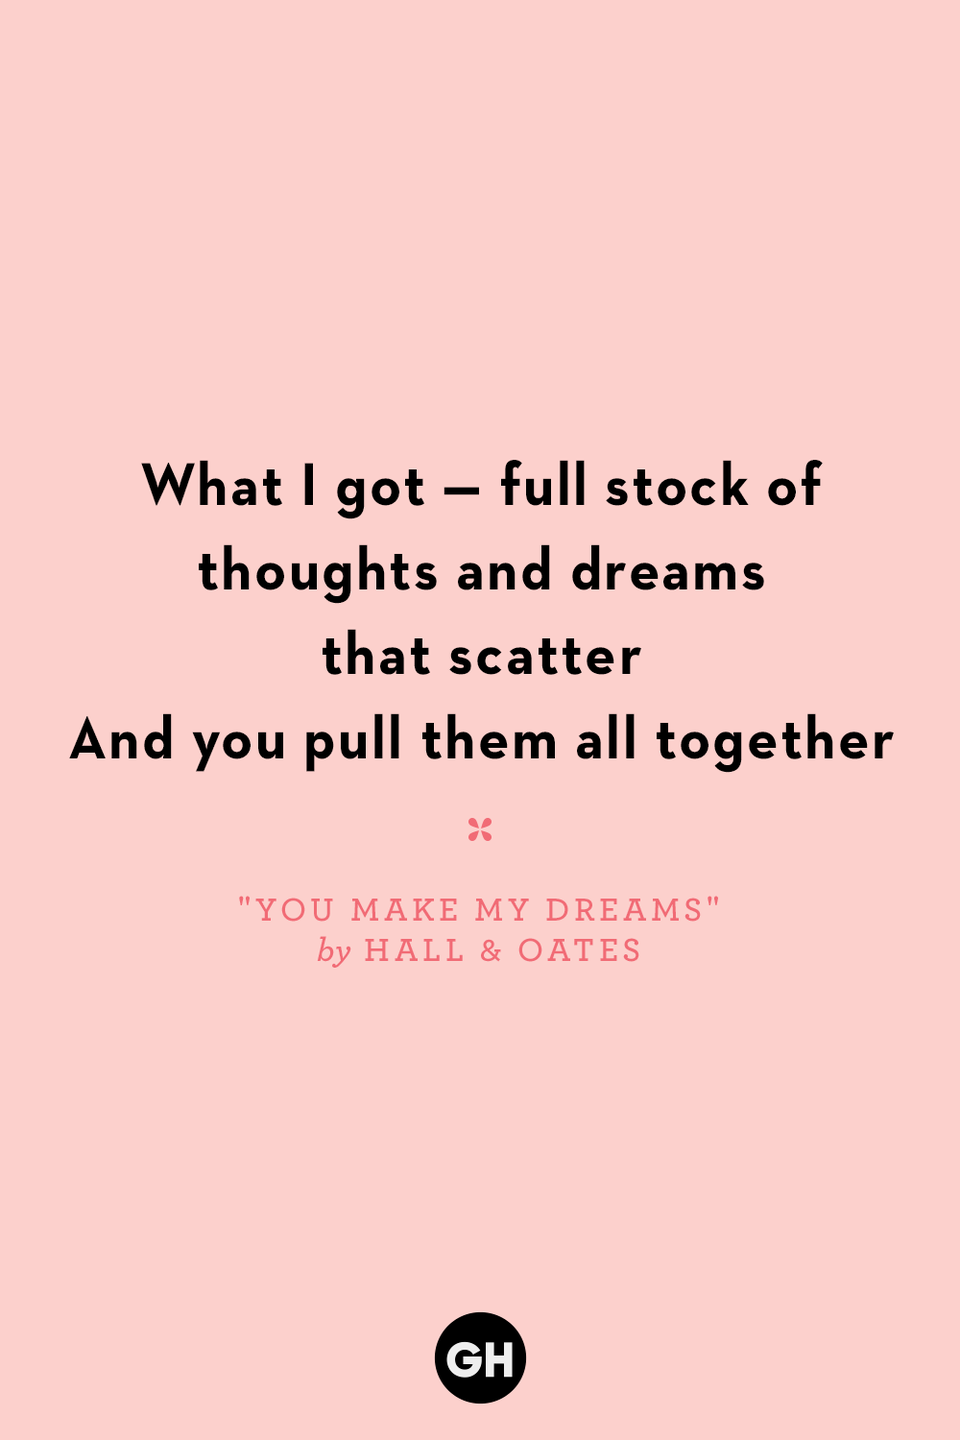 <p>What I got — full stock of thoughts and dreams that scatter</p><p>And you pull them all together</p>